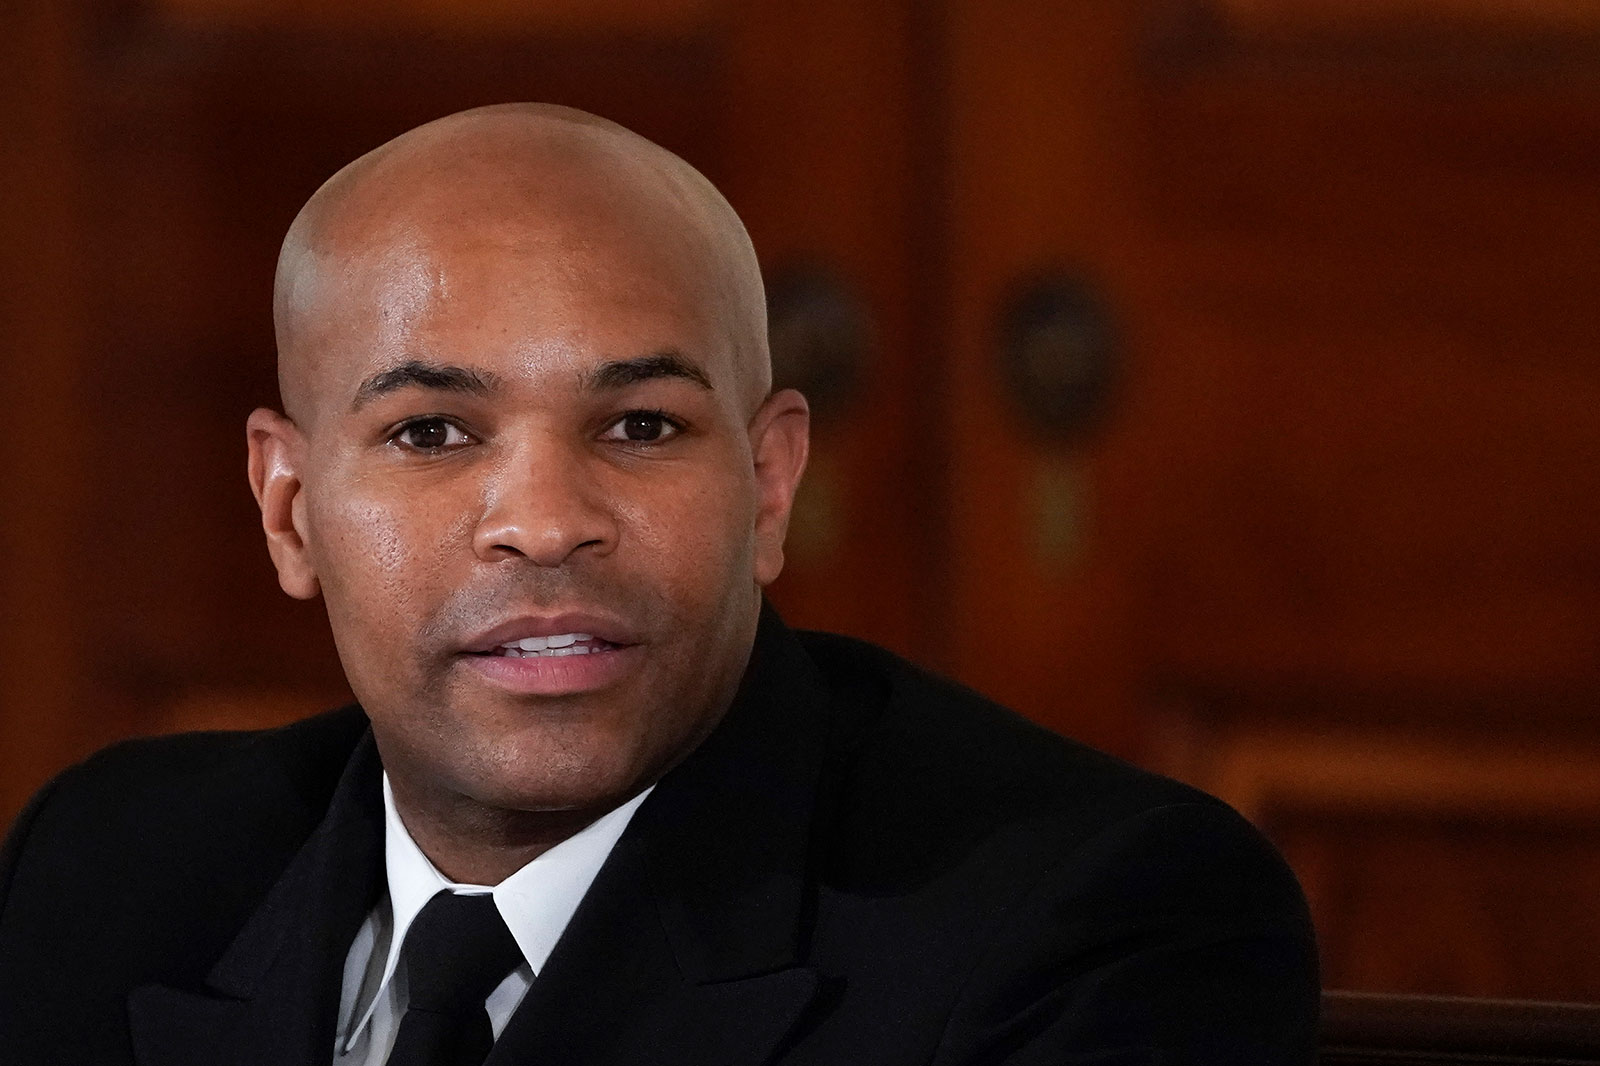 US Surgeon General Dr. Jerome Adams attends an event in the East Room of the White House on Thursday, September 3.